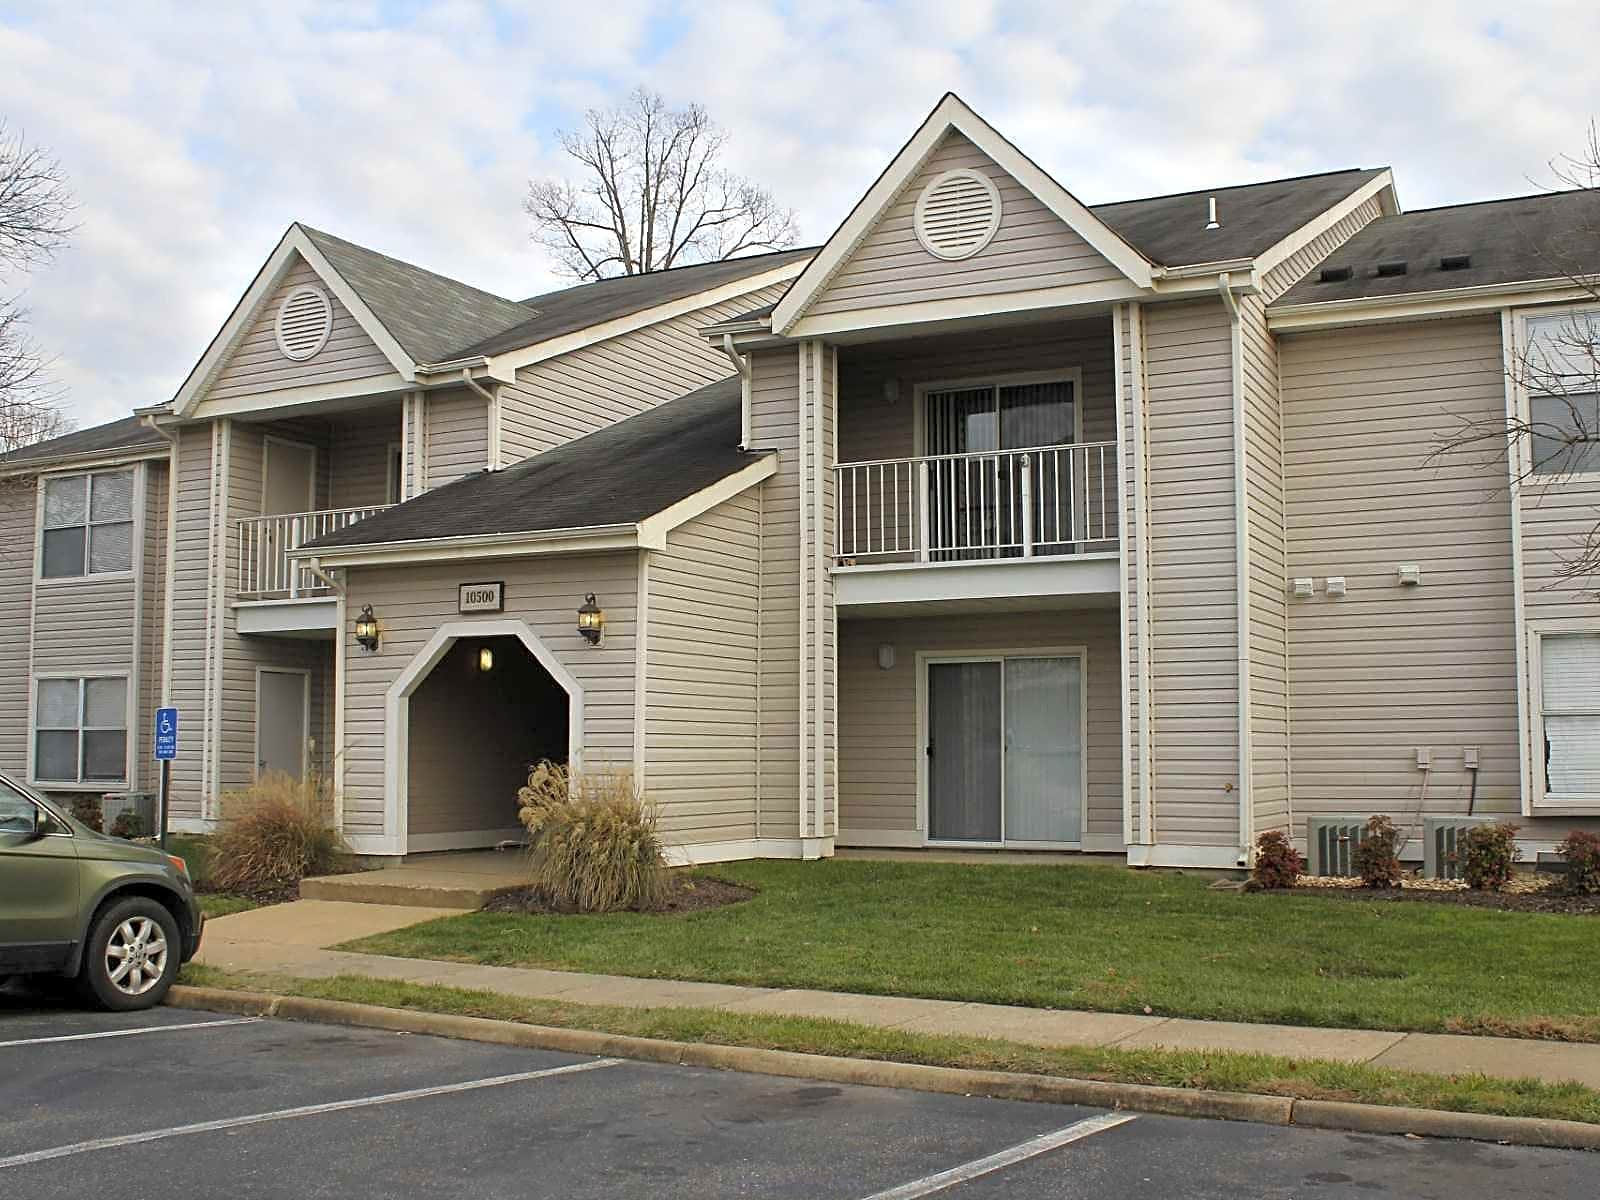 Photo: Fredericksburg Apartment for Rent - $1020.00 / month; 2 Bd & 2 Ba